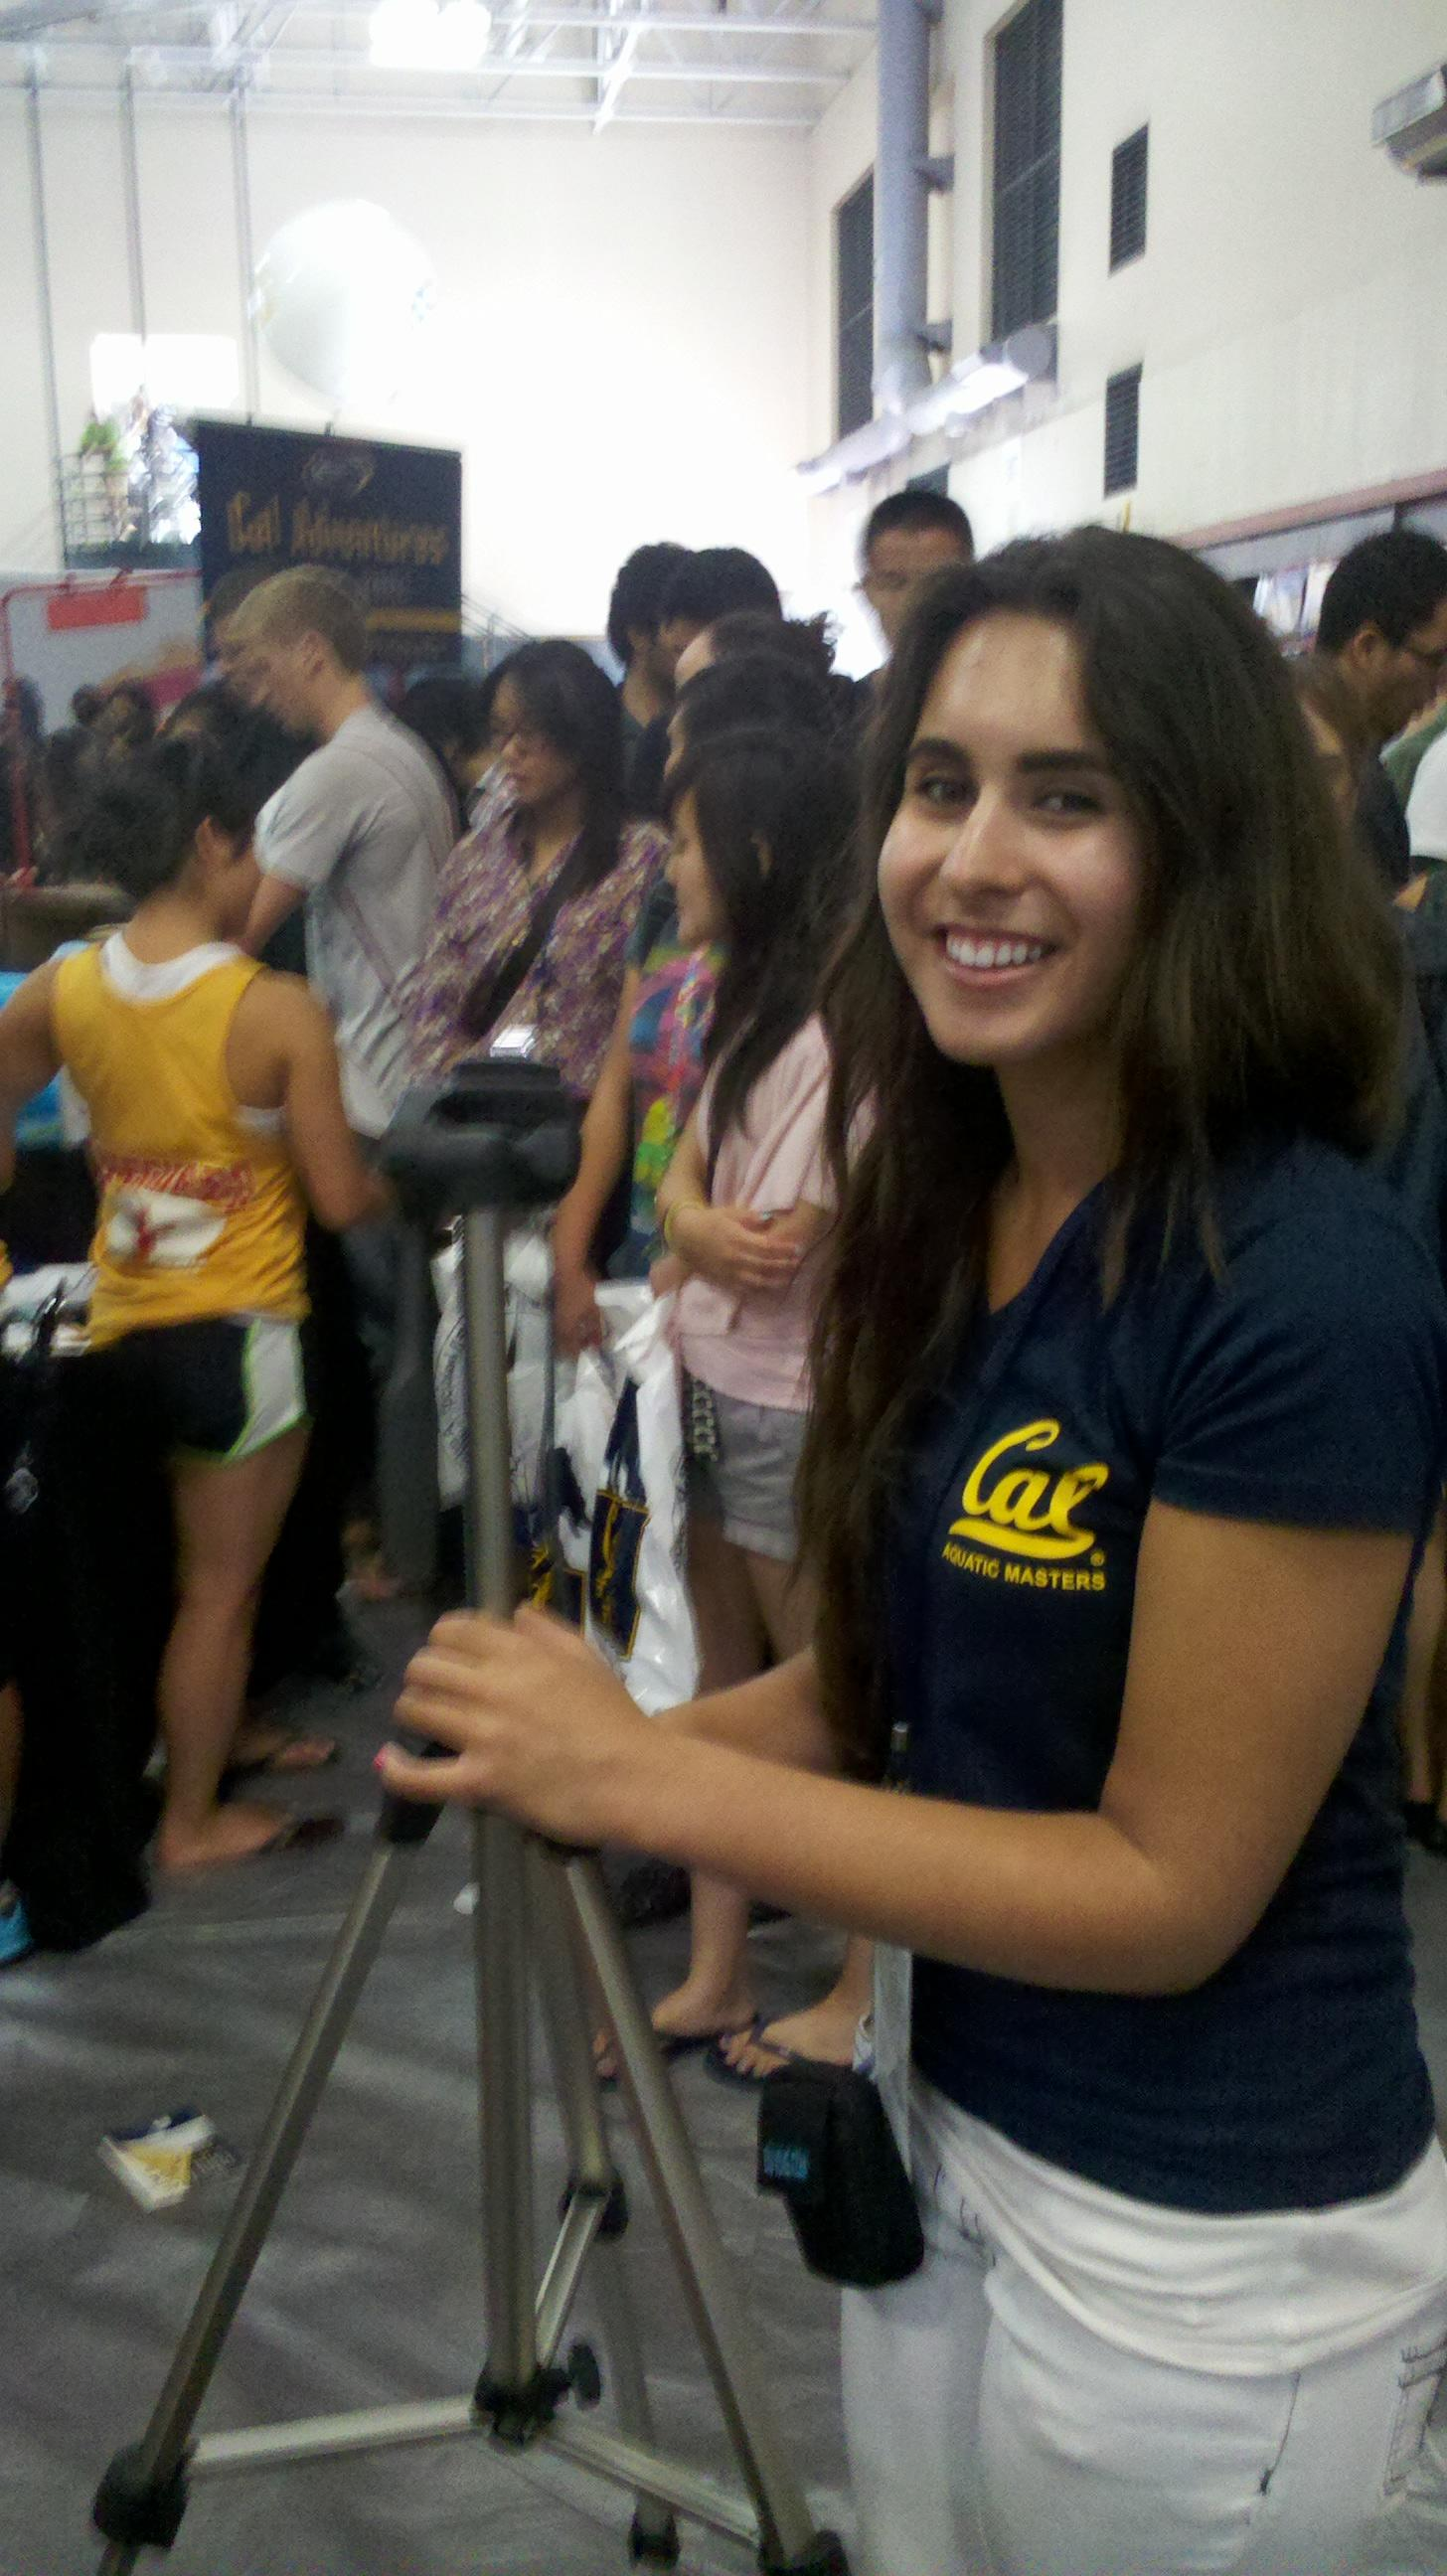 Chrissy Galli, at Caltopia 2012 as part of her internship with Rec. Sports at the University of California, Berkeley.